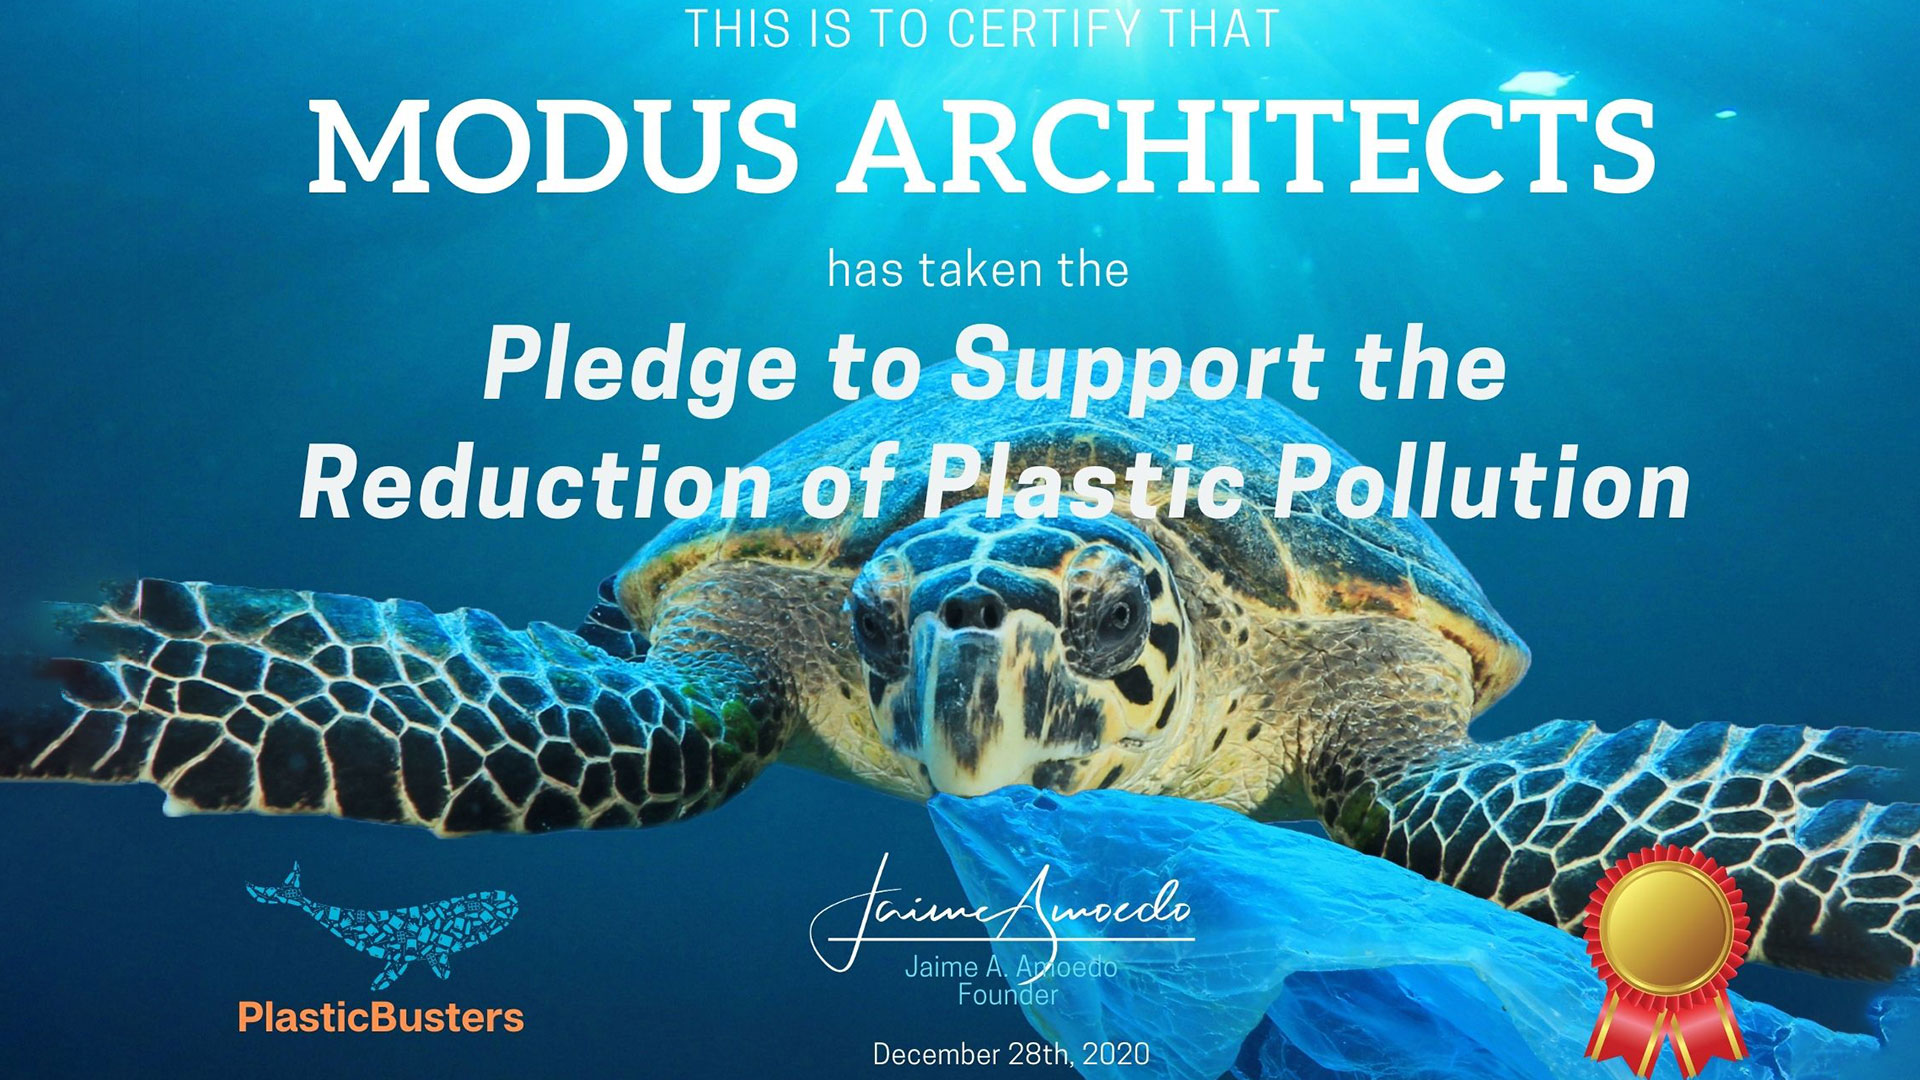 Proud to support PlasticBusters Pledge to reduce plastic pollution